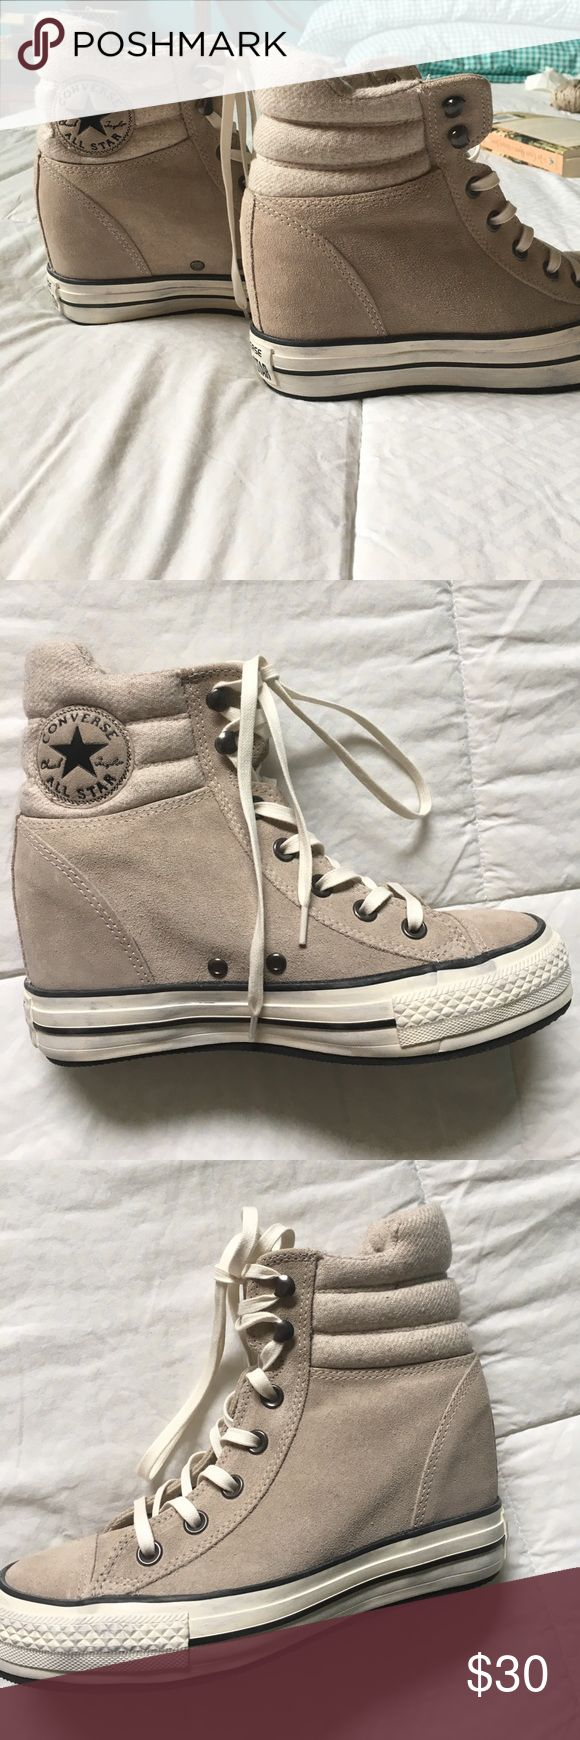 Hightop Converse wedge sneakers Wedge sneakers with a cushioned ankle, grey suede...worn once! Offers welcome :) Converse Shoes Sneakers